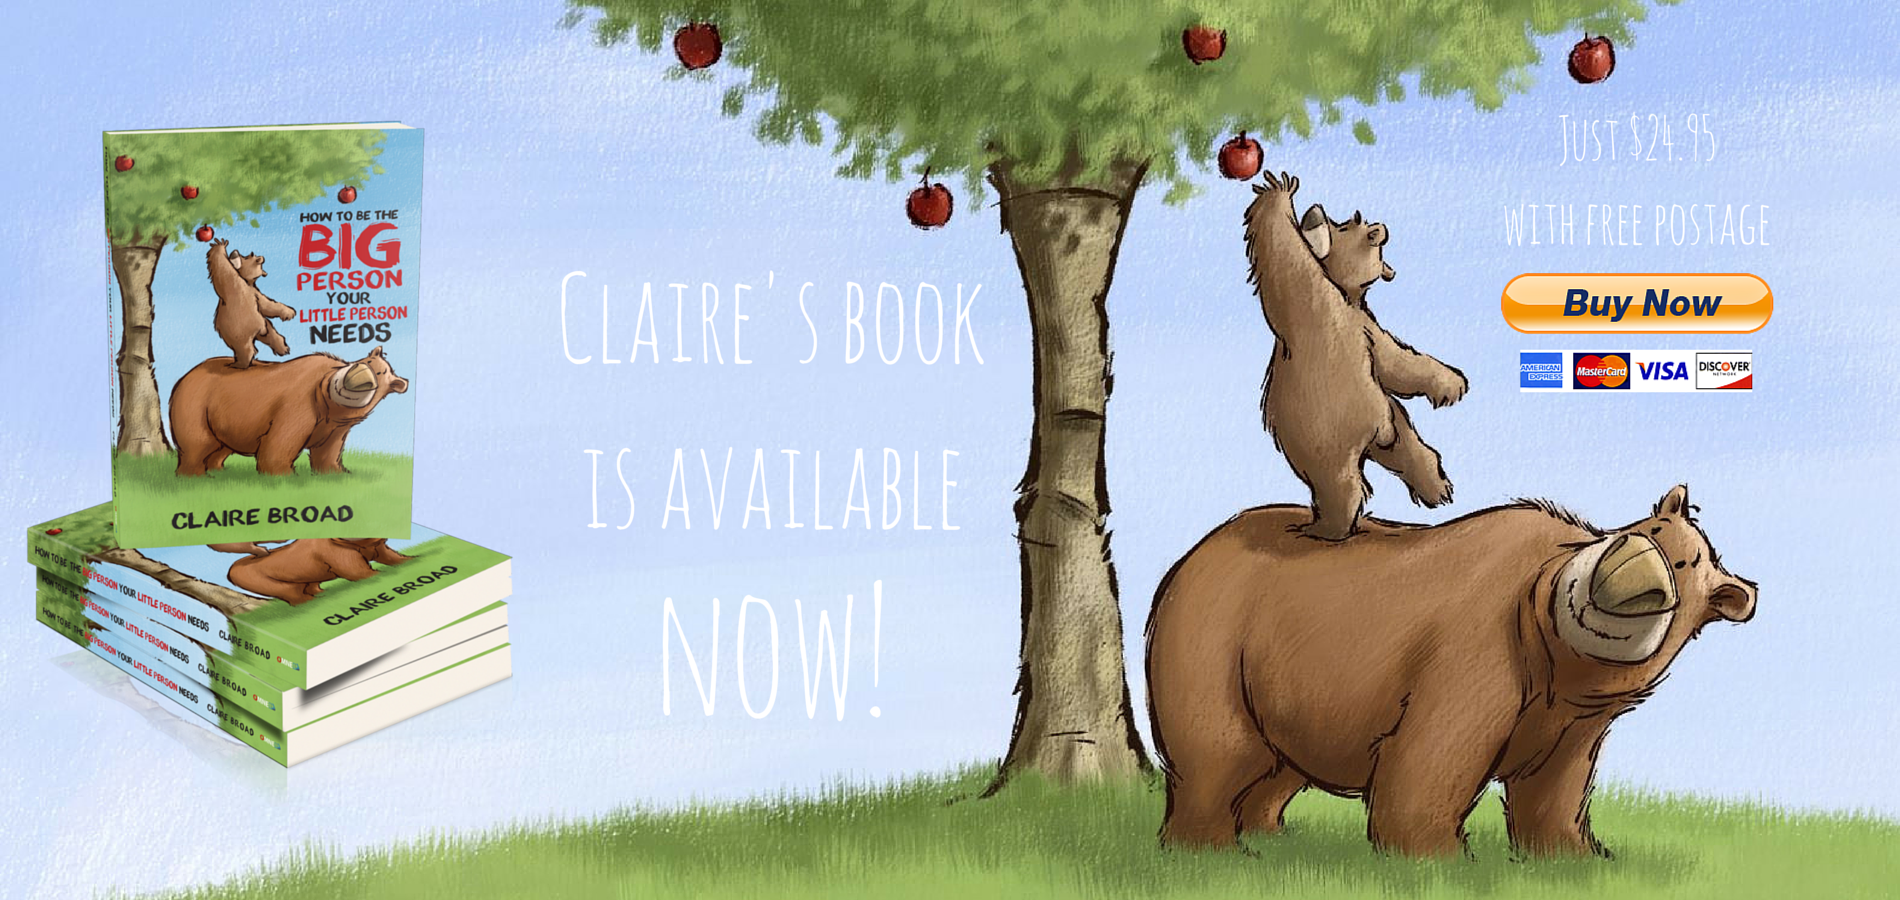 Claire's book is available now!